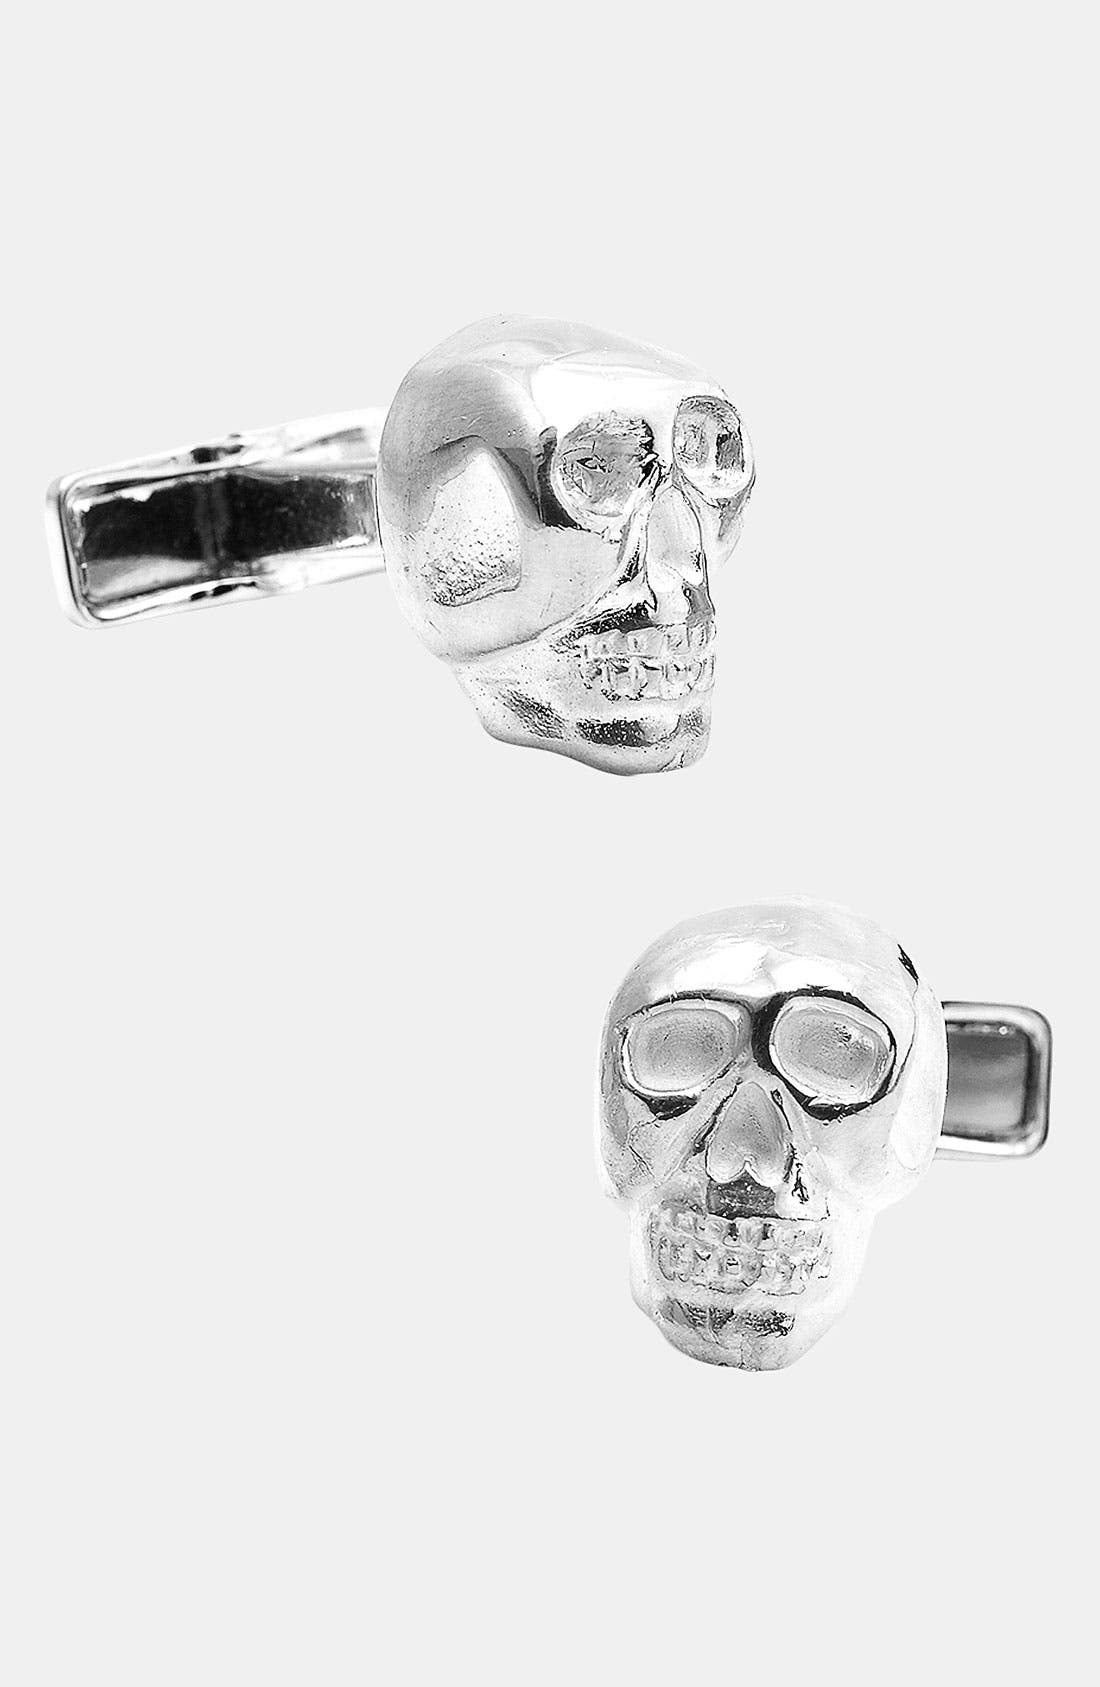 Main Image - Ox and Bull Trading Co. Skull Cuff Links